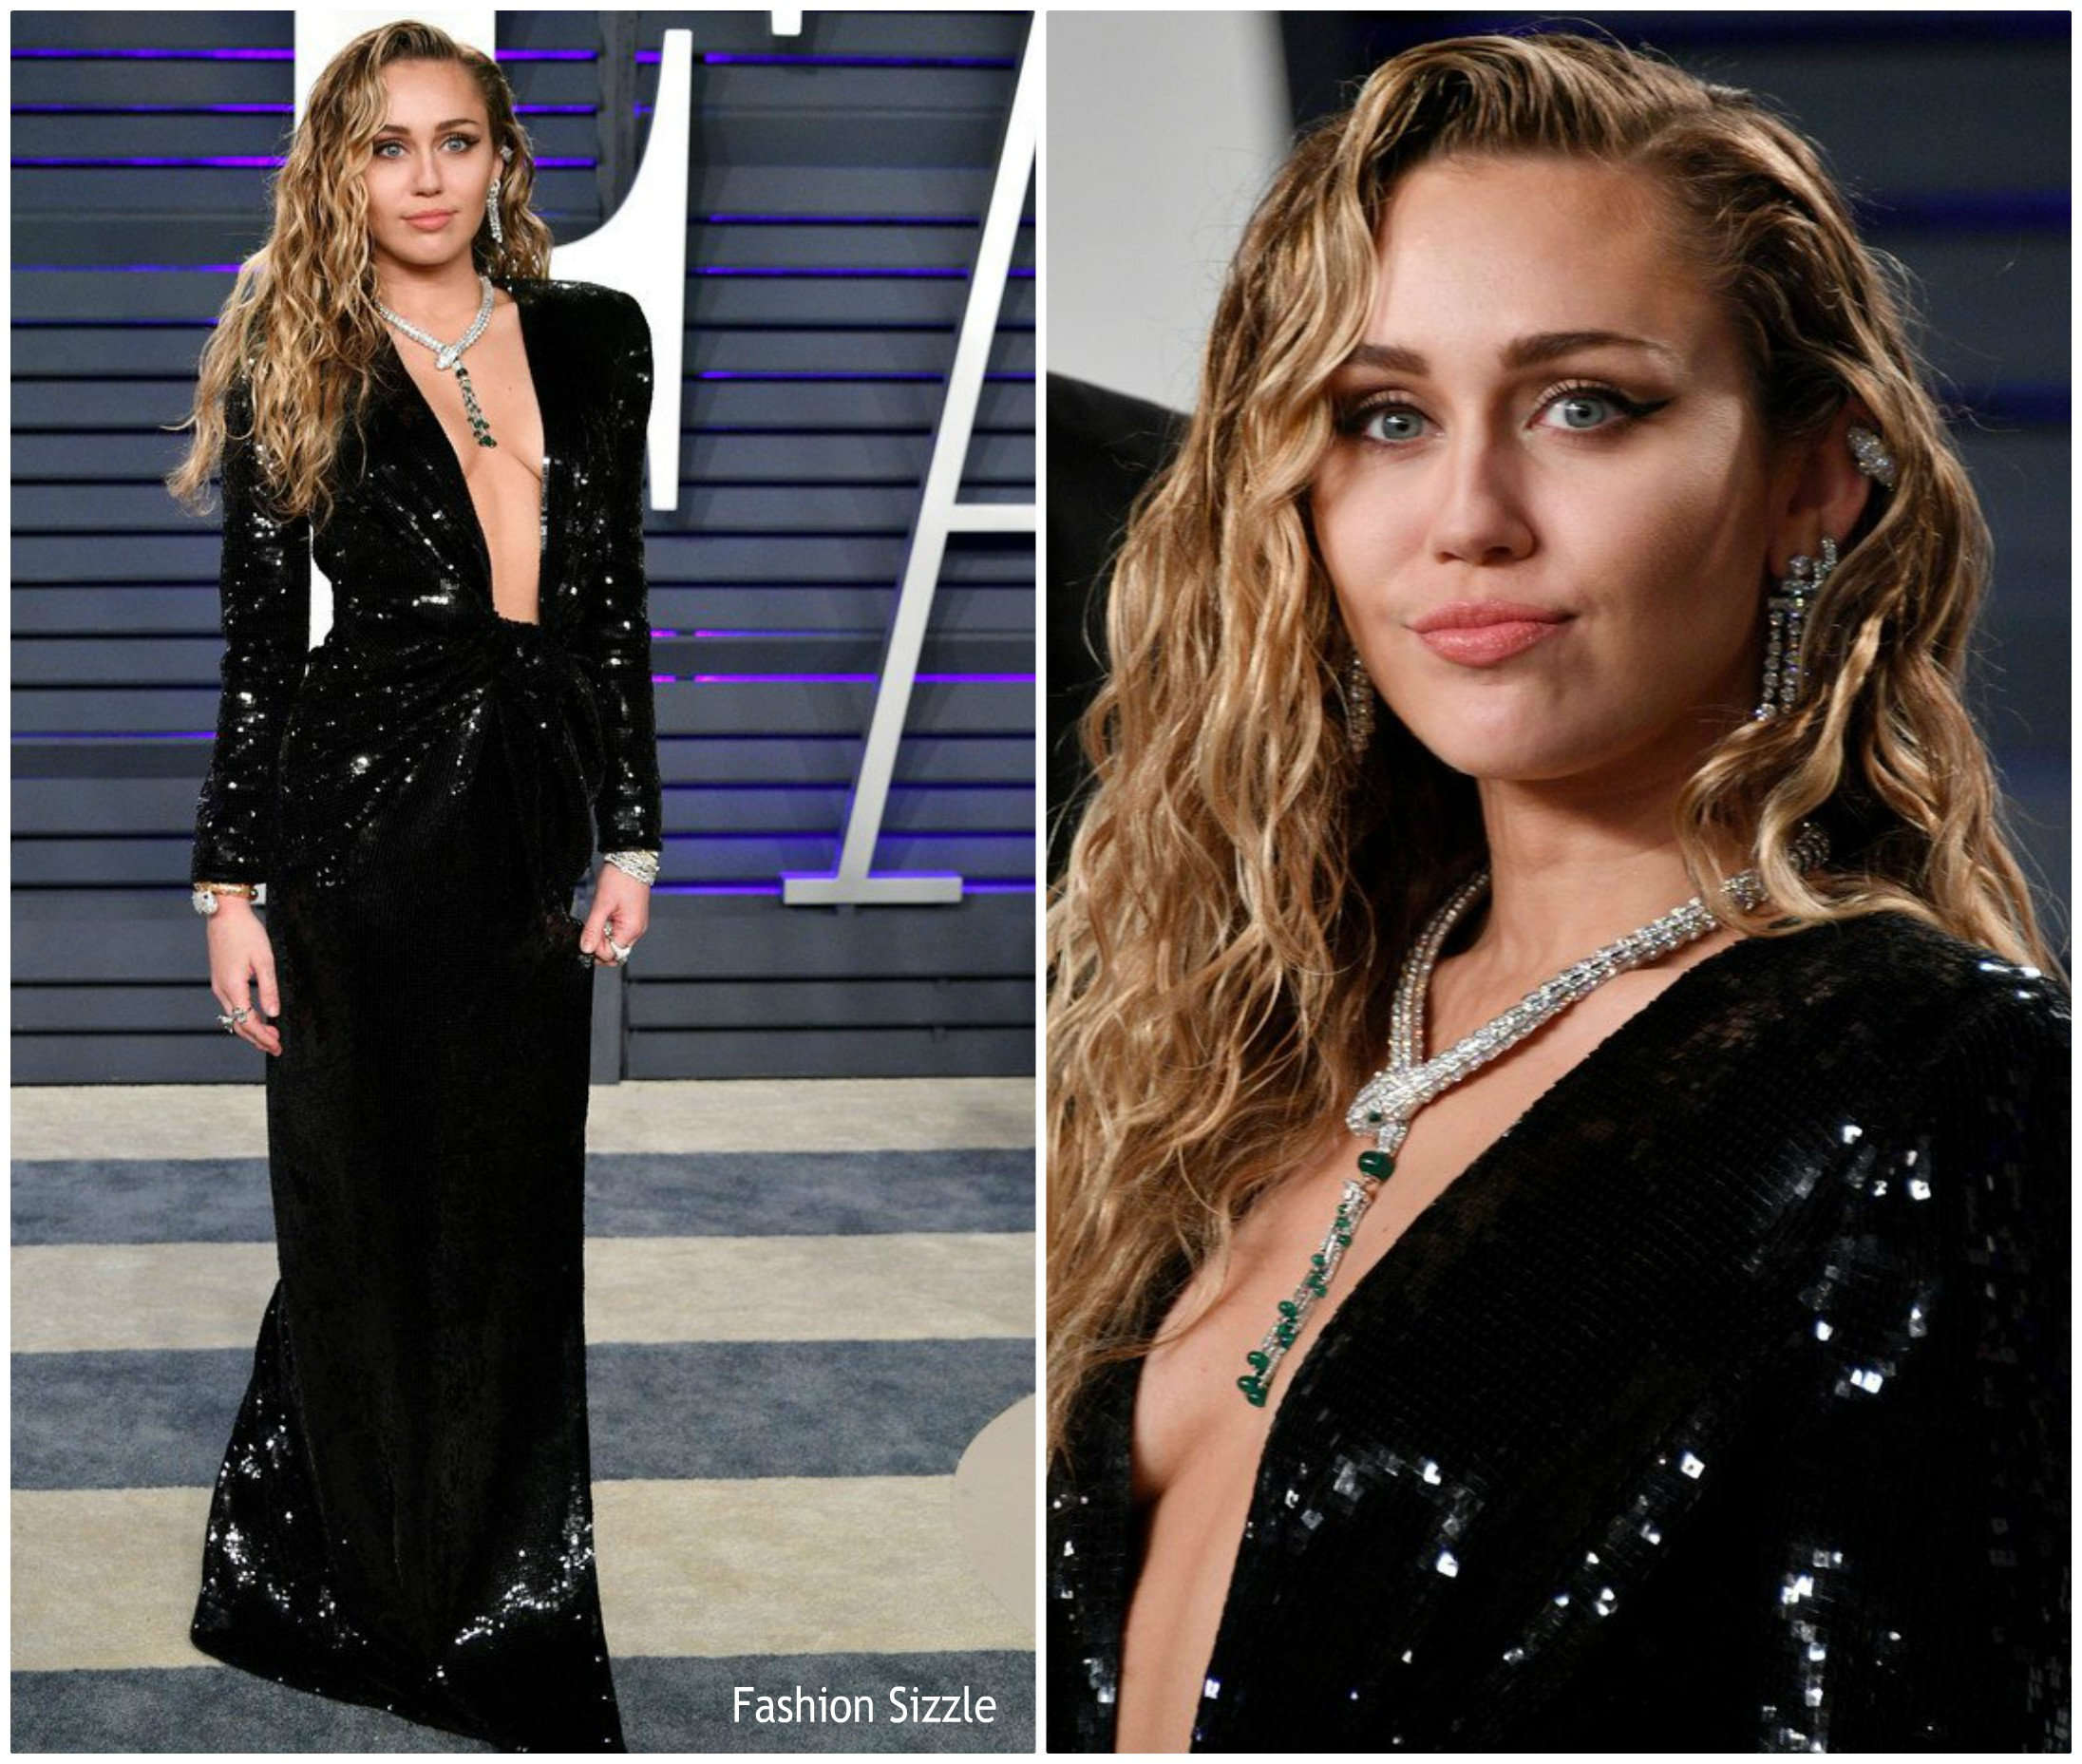 miley-cyrus-in-saint-laurent-2019-vanity-fair-oscar-party